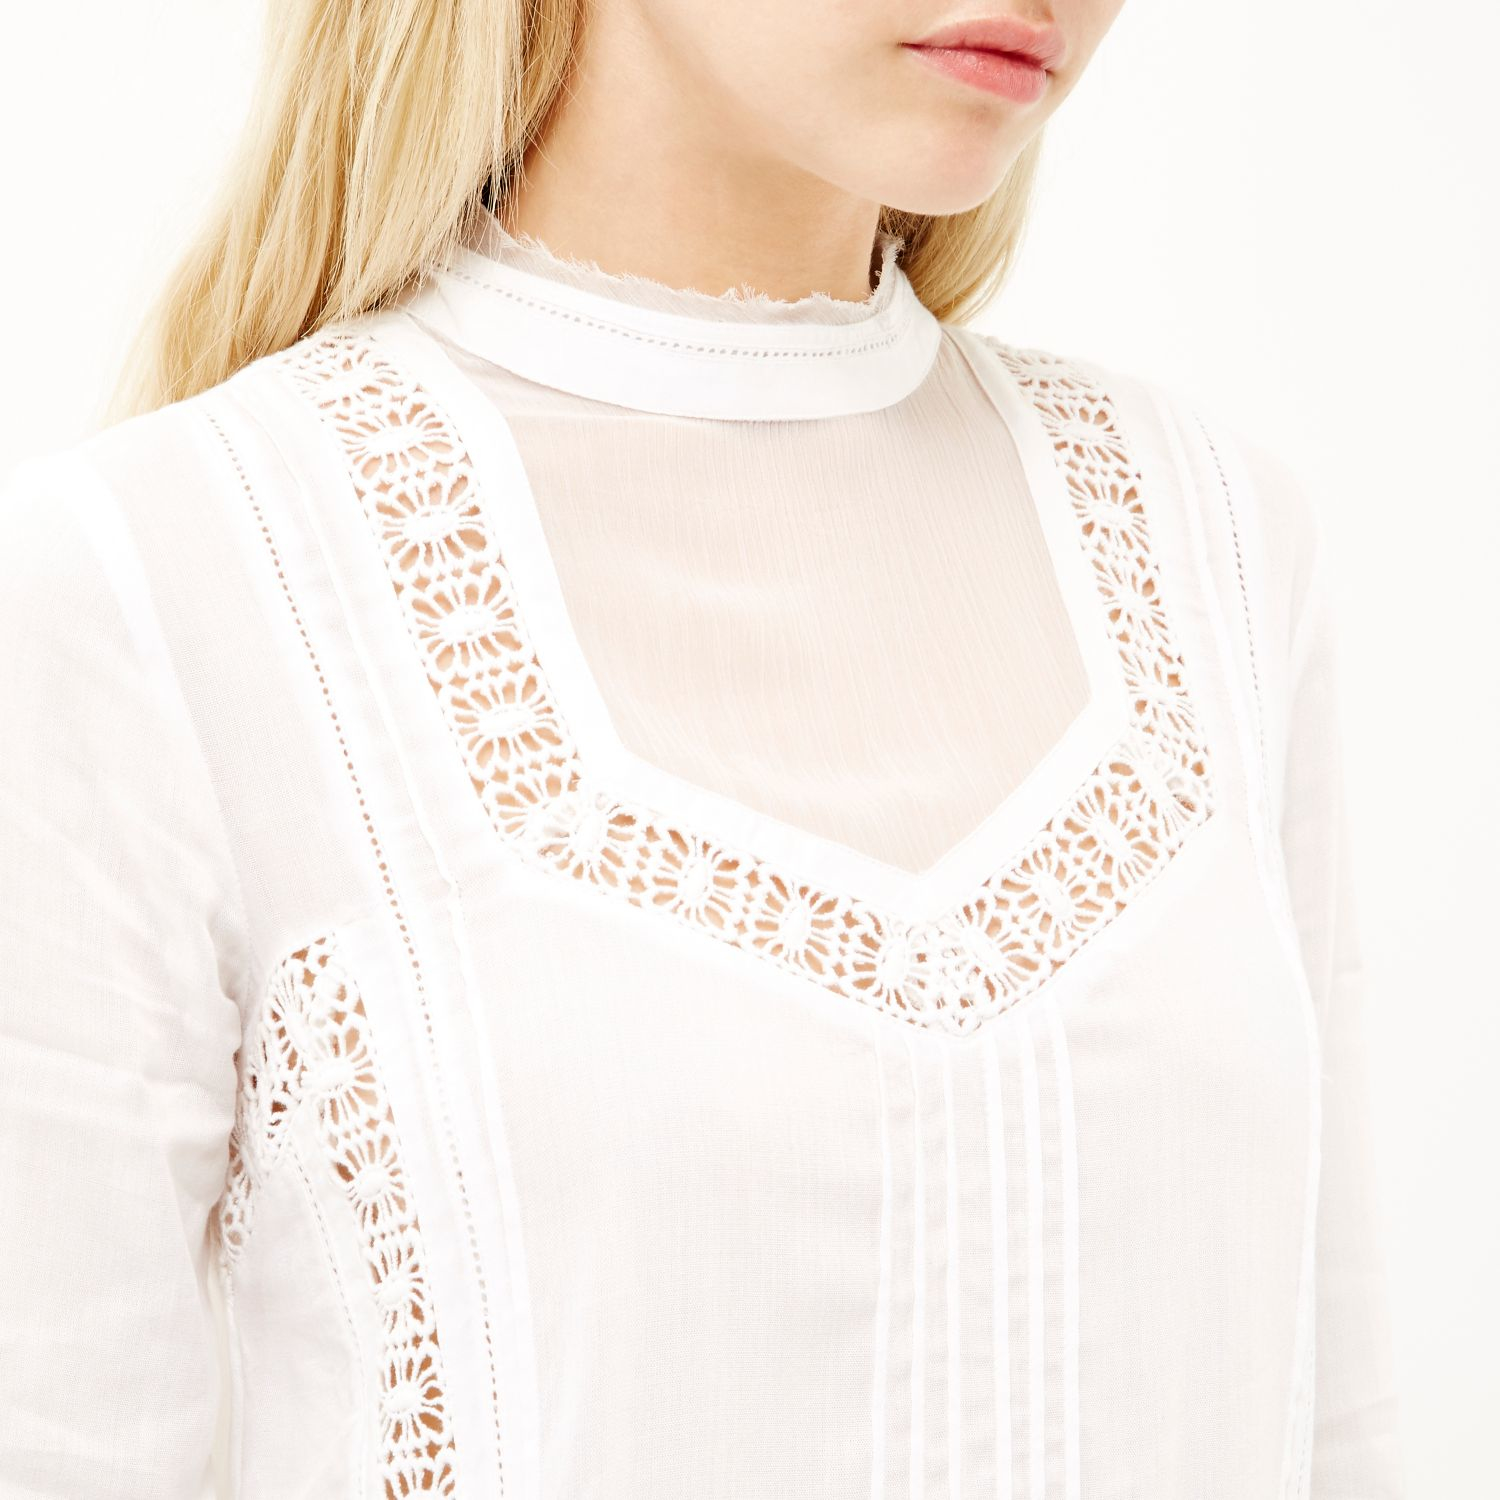 Womens Cream Lace Blouse 97